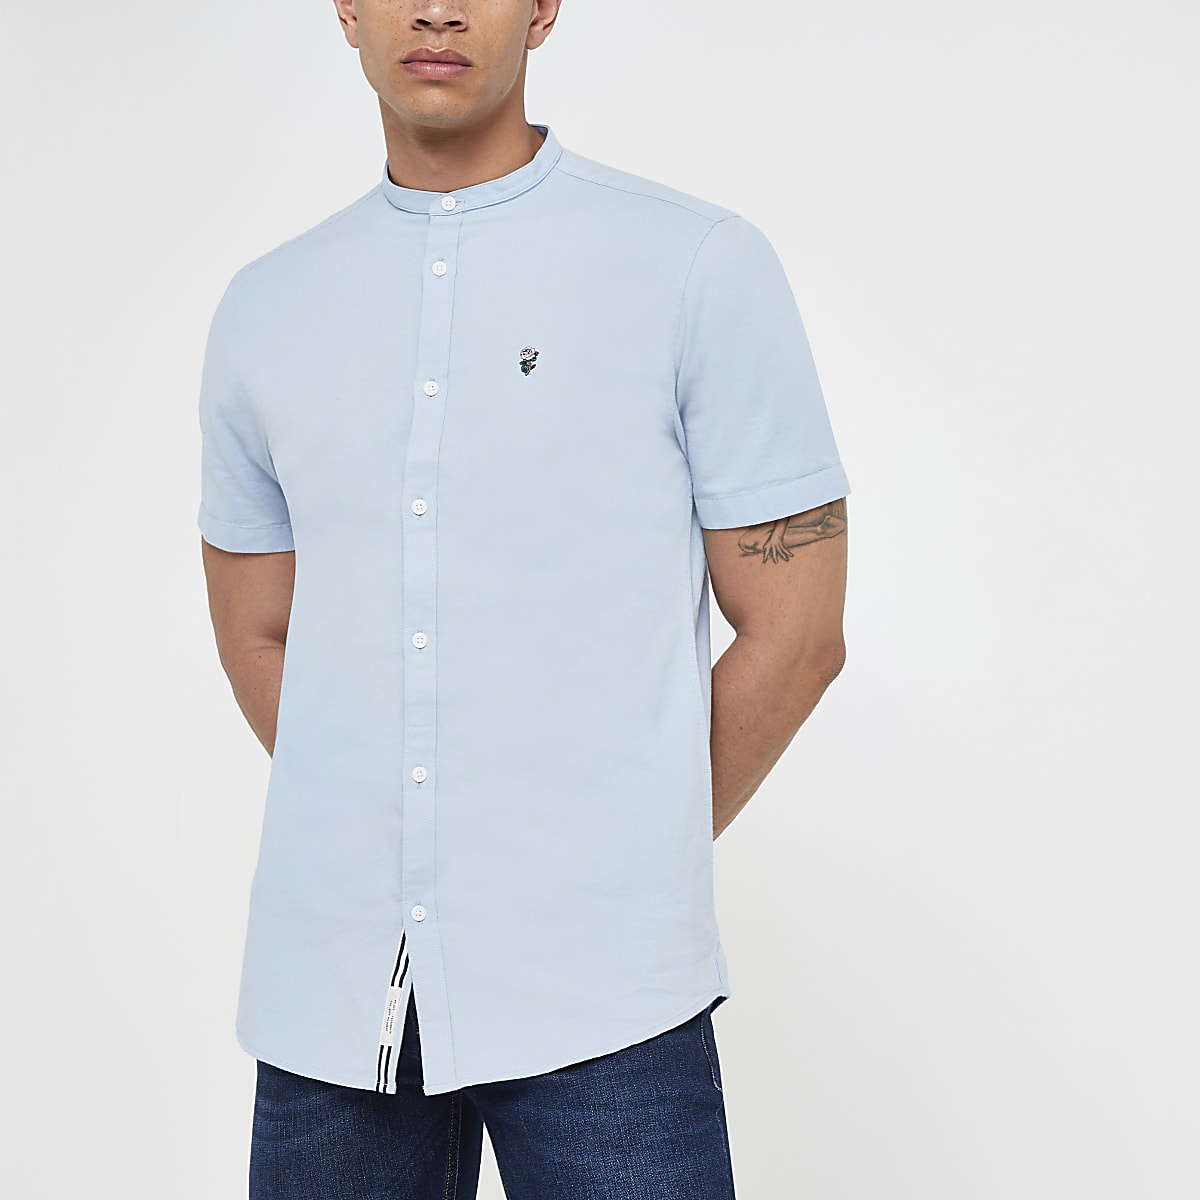 Blue muscle fit Oxford grandad shirt